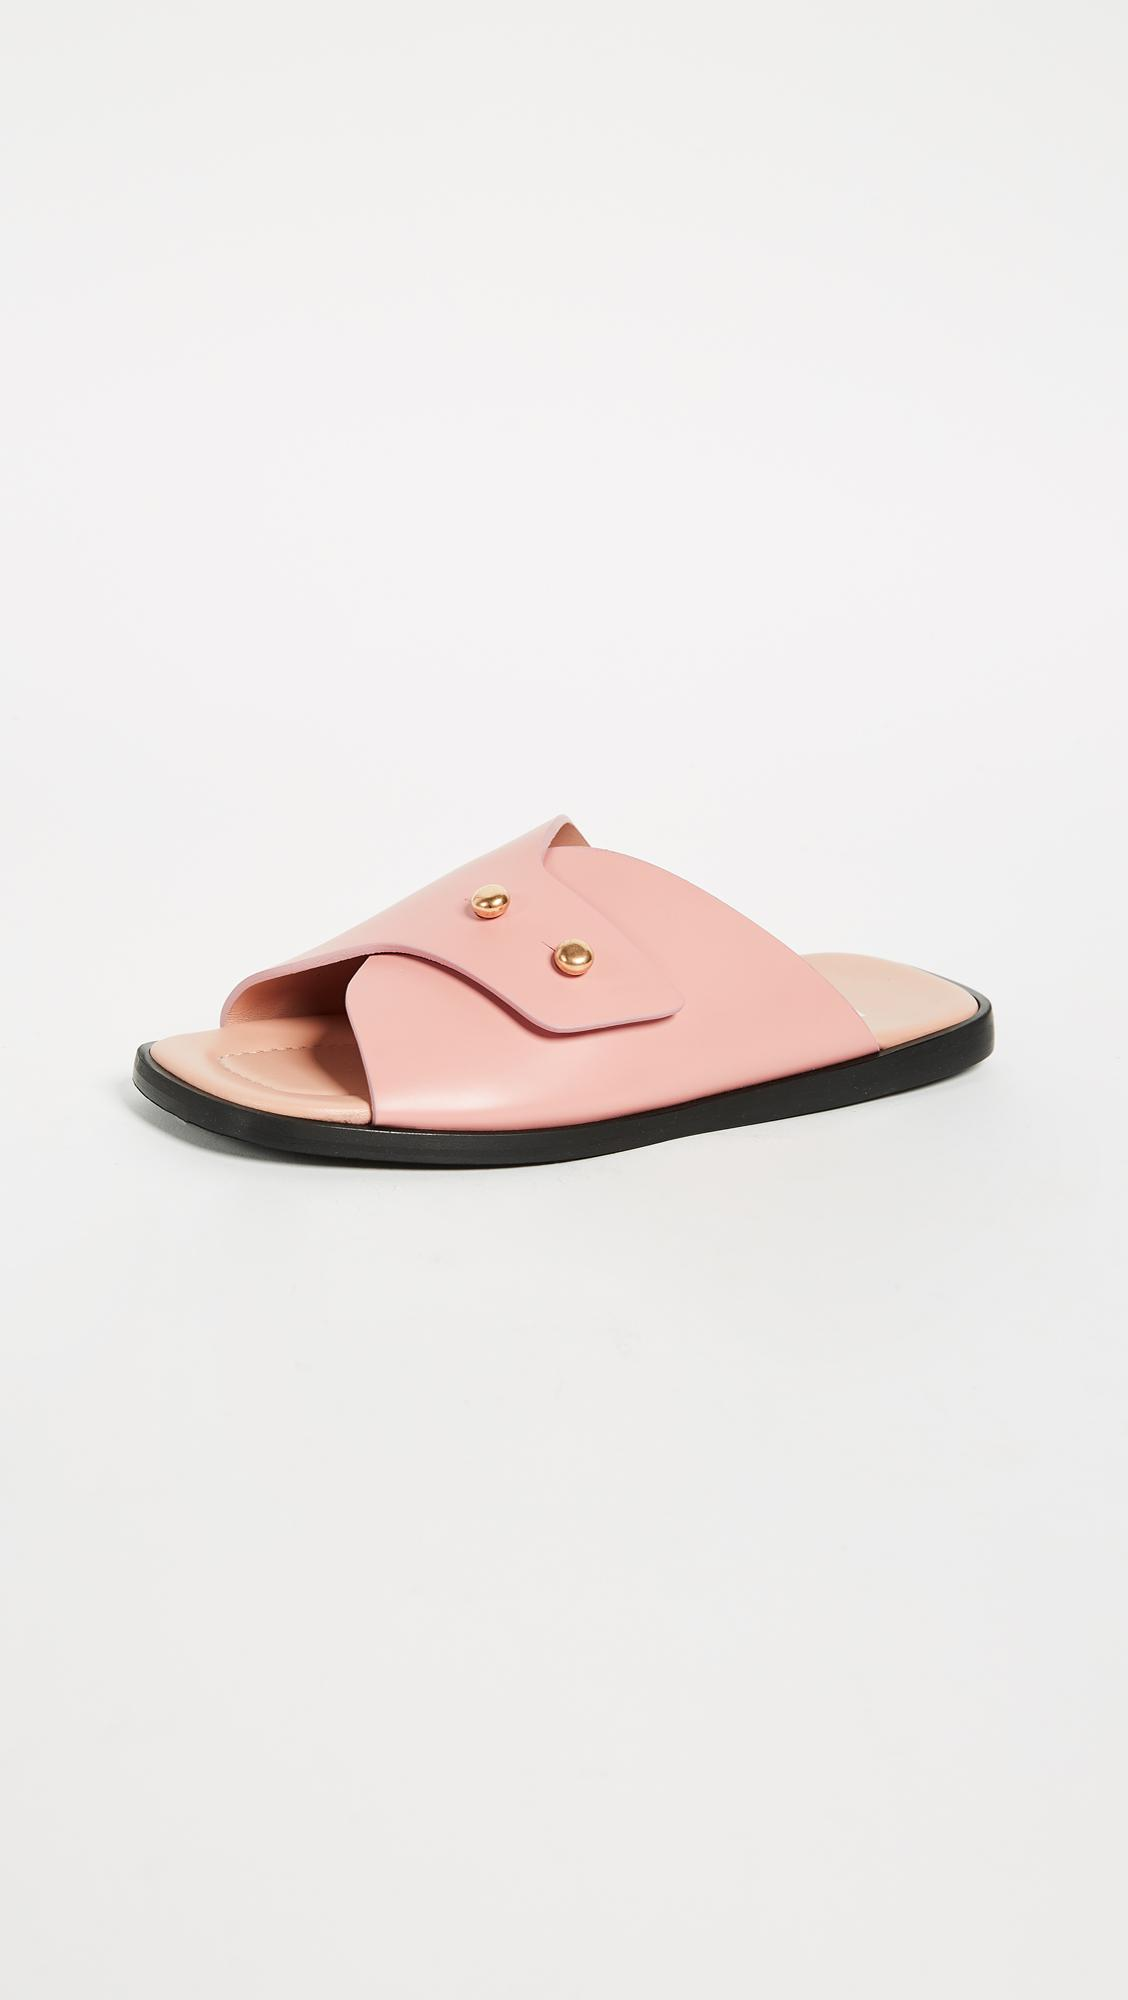 Jilly Slide Shoes in Pink Calfskin Acne Studios